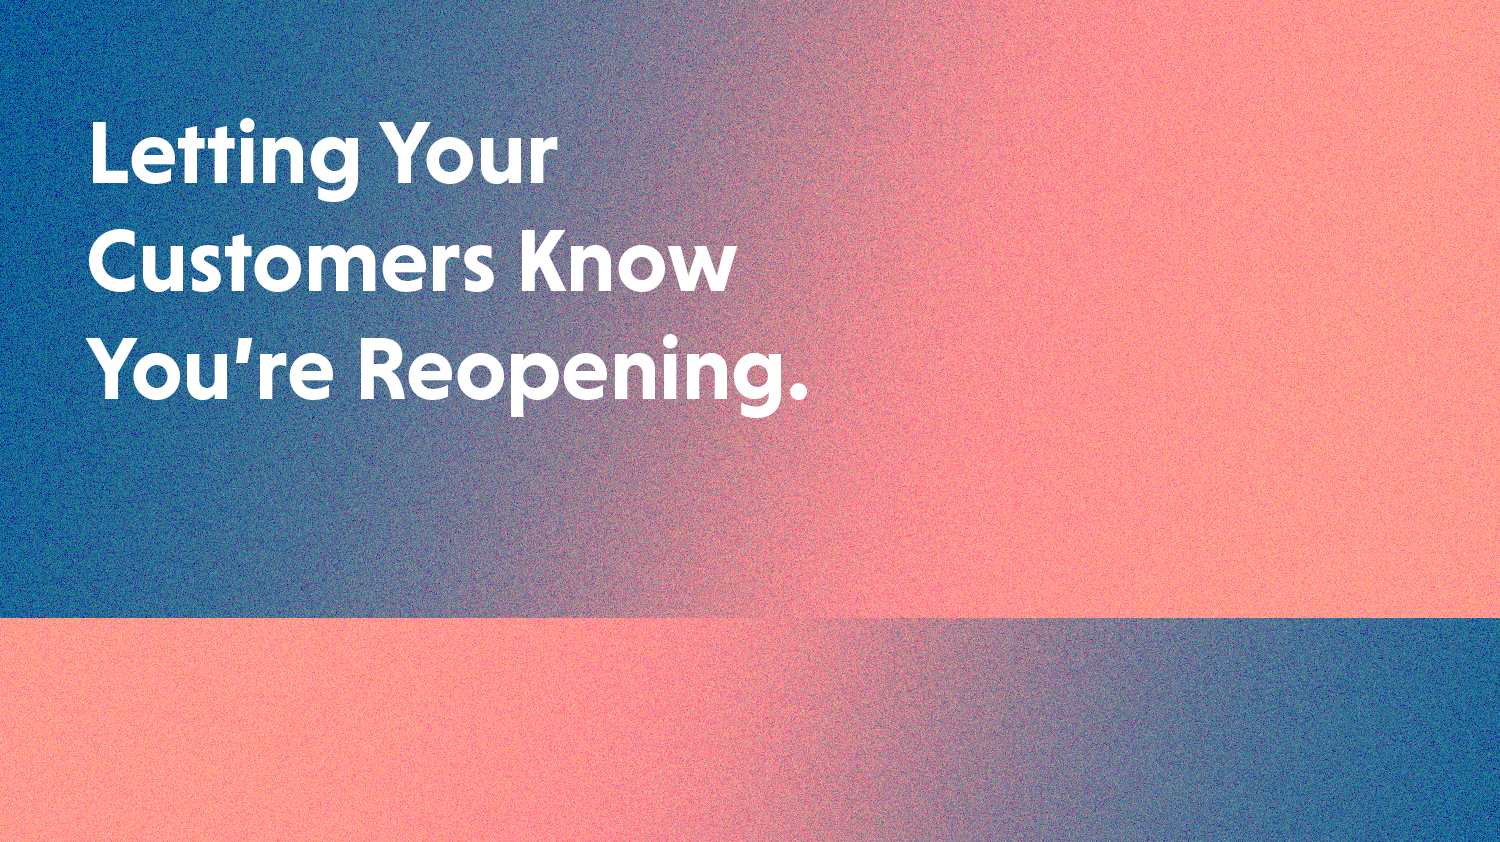 How to Let Your Customers Know You're Re-Opening